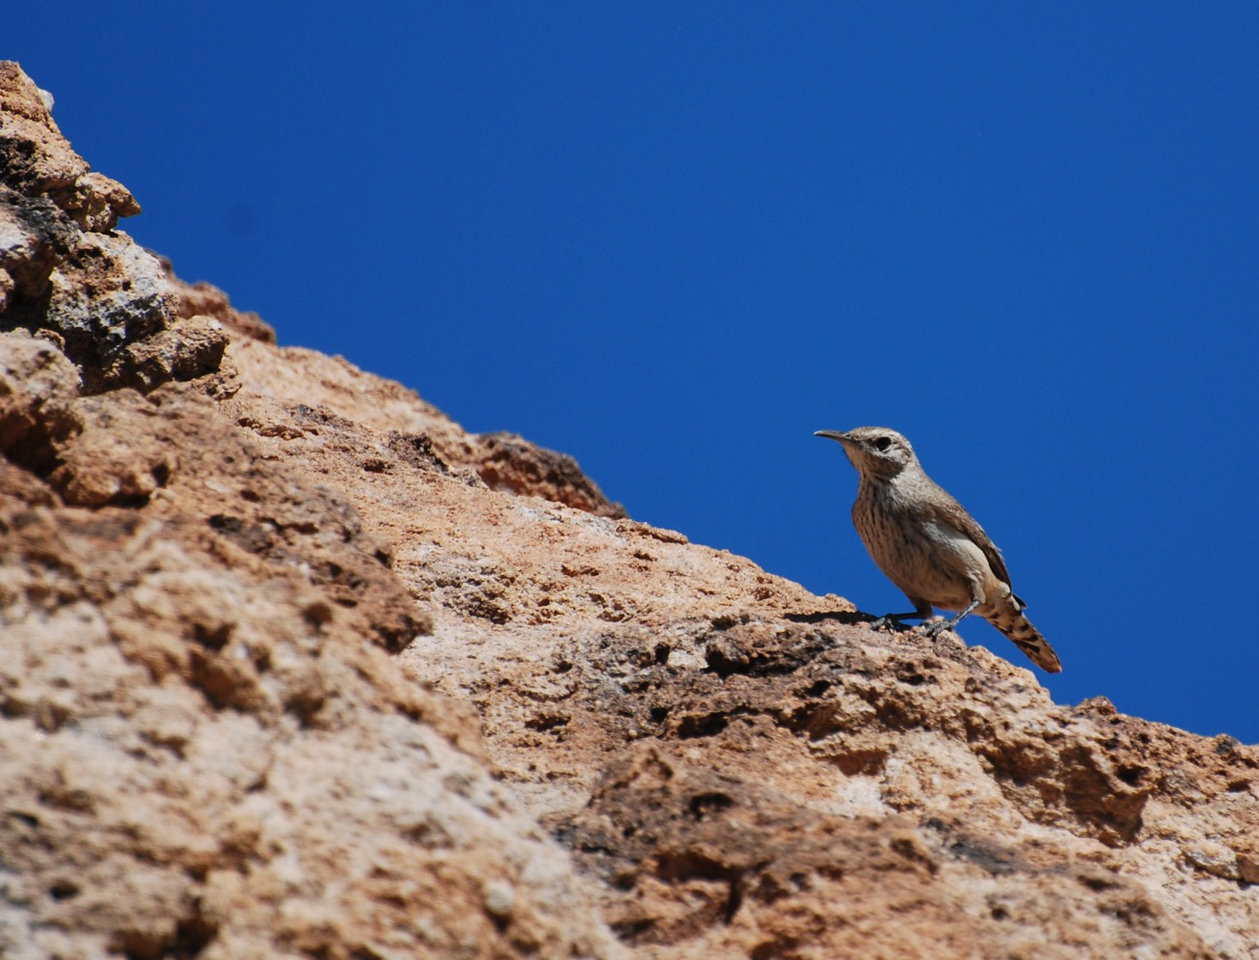 I spent a few hours on Saturday in the desert of Arizona and witnessed something interesting. I observed an encounter between a wren couple and a lizard. The birds were agitated, flying around a rock some 50 meters up the slope. I began approaching them cautiously. The birds did not pay attention to me and I came fairly close. They were flying around a gap in the rock and peeking inside with the feathers bristled. Suddenly a lizard stuck his big head out of the rock. It became apparent that the lizard had entered the nest of the birds. The birds were trying to drive the intruder away. The lizard poked his head annoyed several times more while the wrens were circling around at a distance. Eventually the poor birds flew away.<br /> <br /> I felt for them.